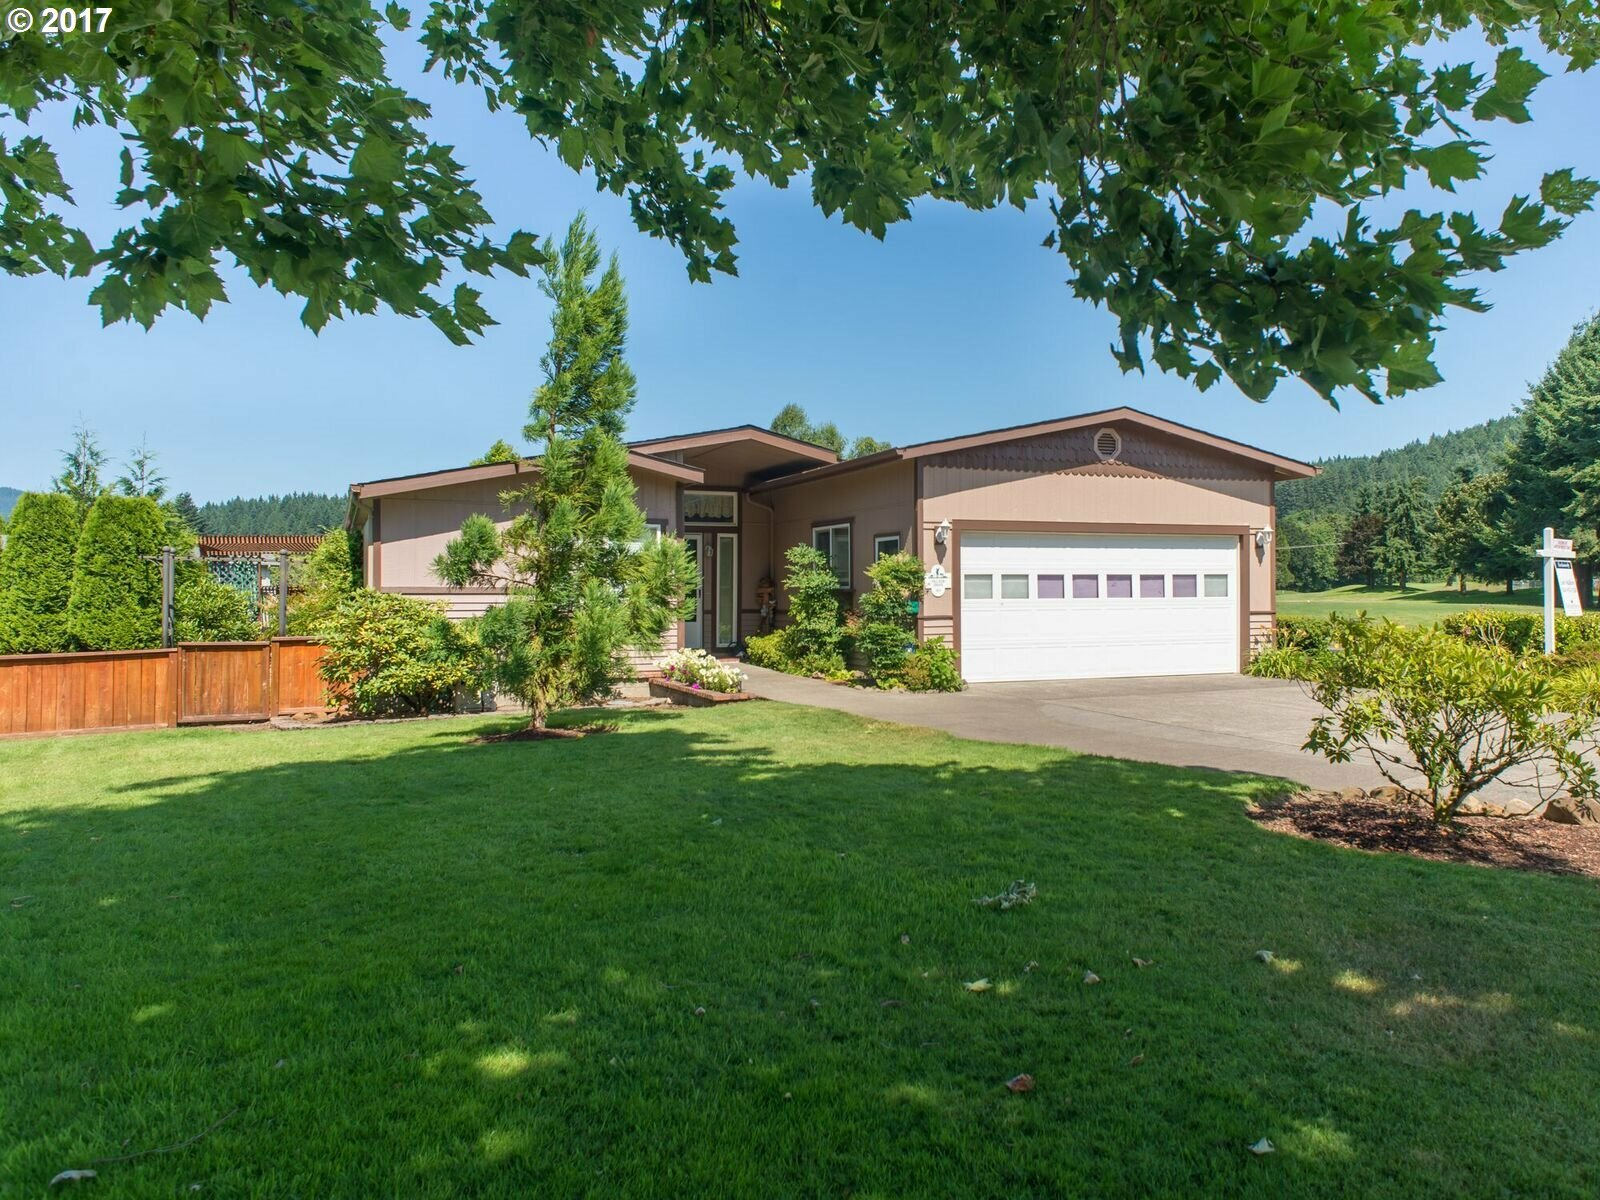 101 Village Dr, Cottage Grove, OR - USA (photo 1)